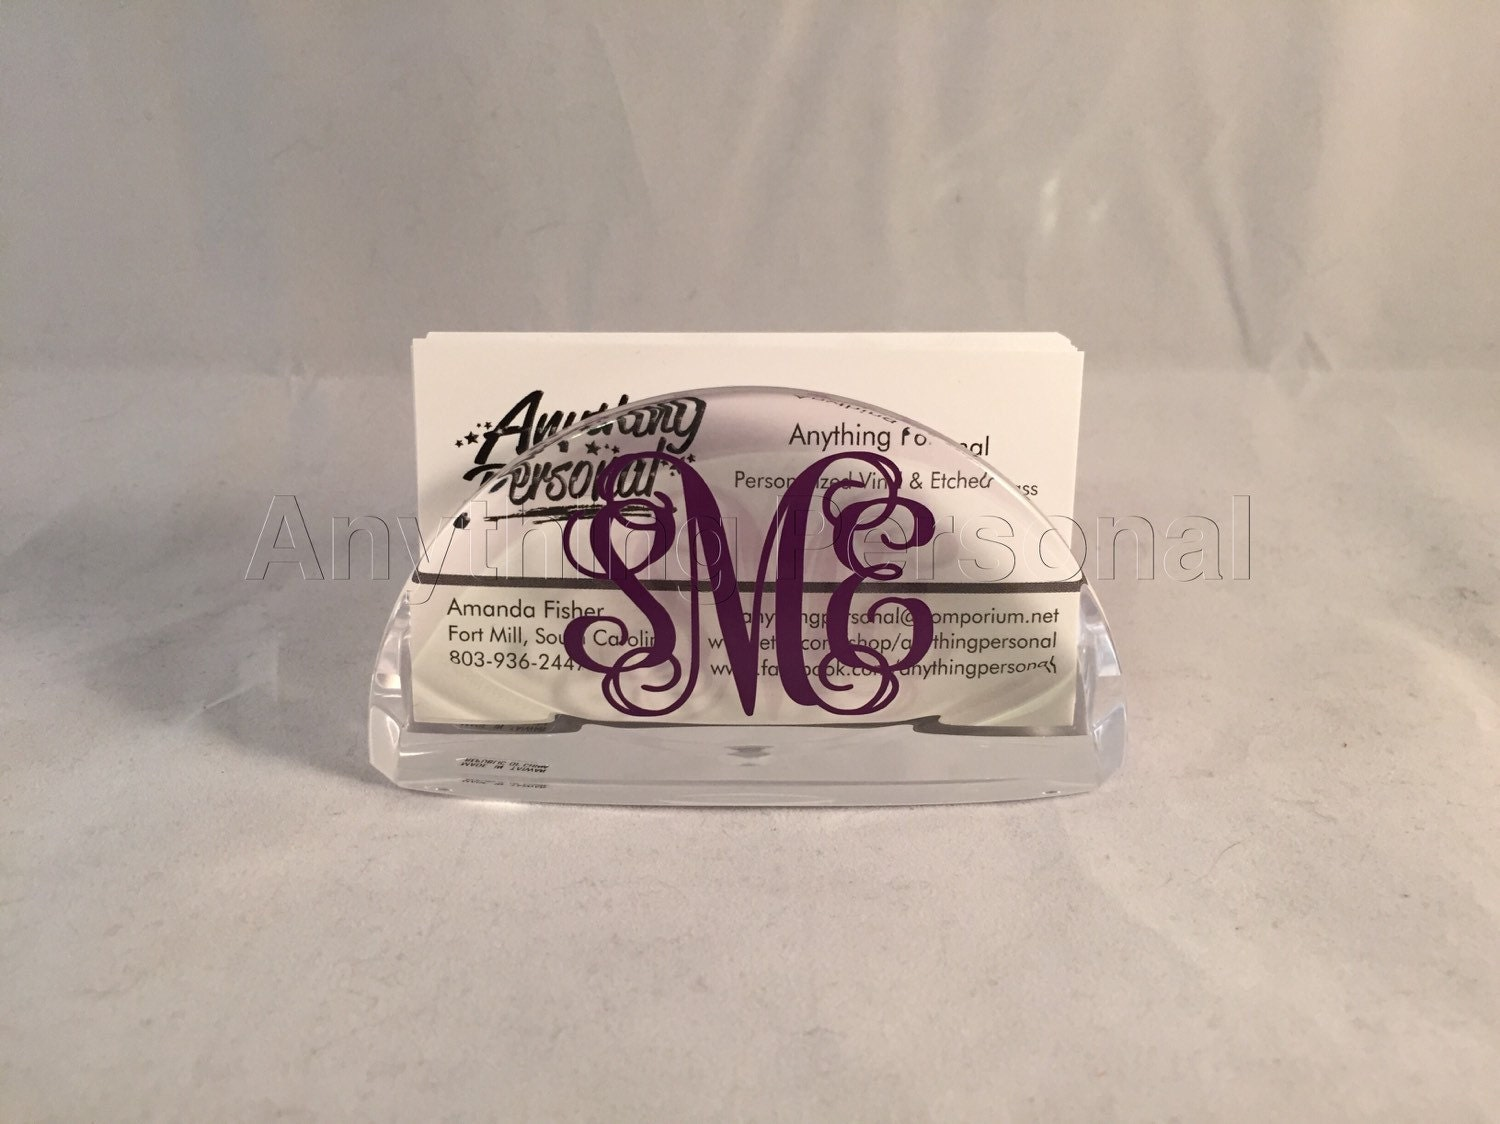 Personalized gift monogram gift business card holder for Personalized gift cards for businesses